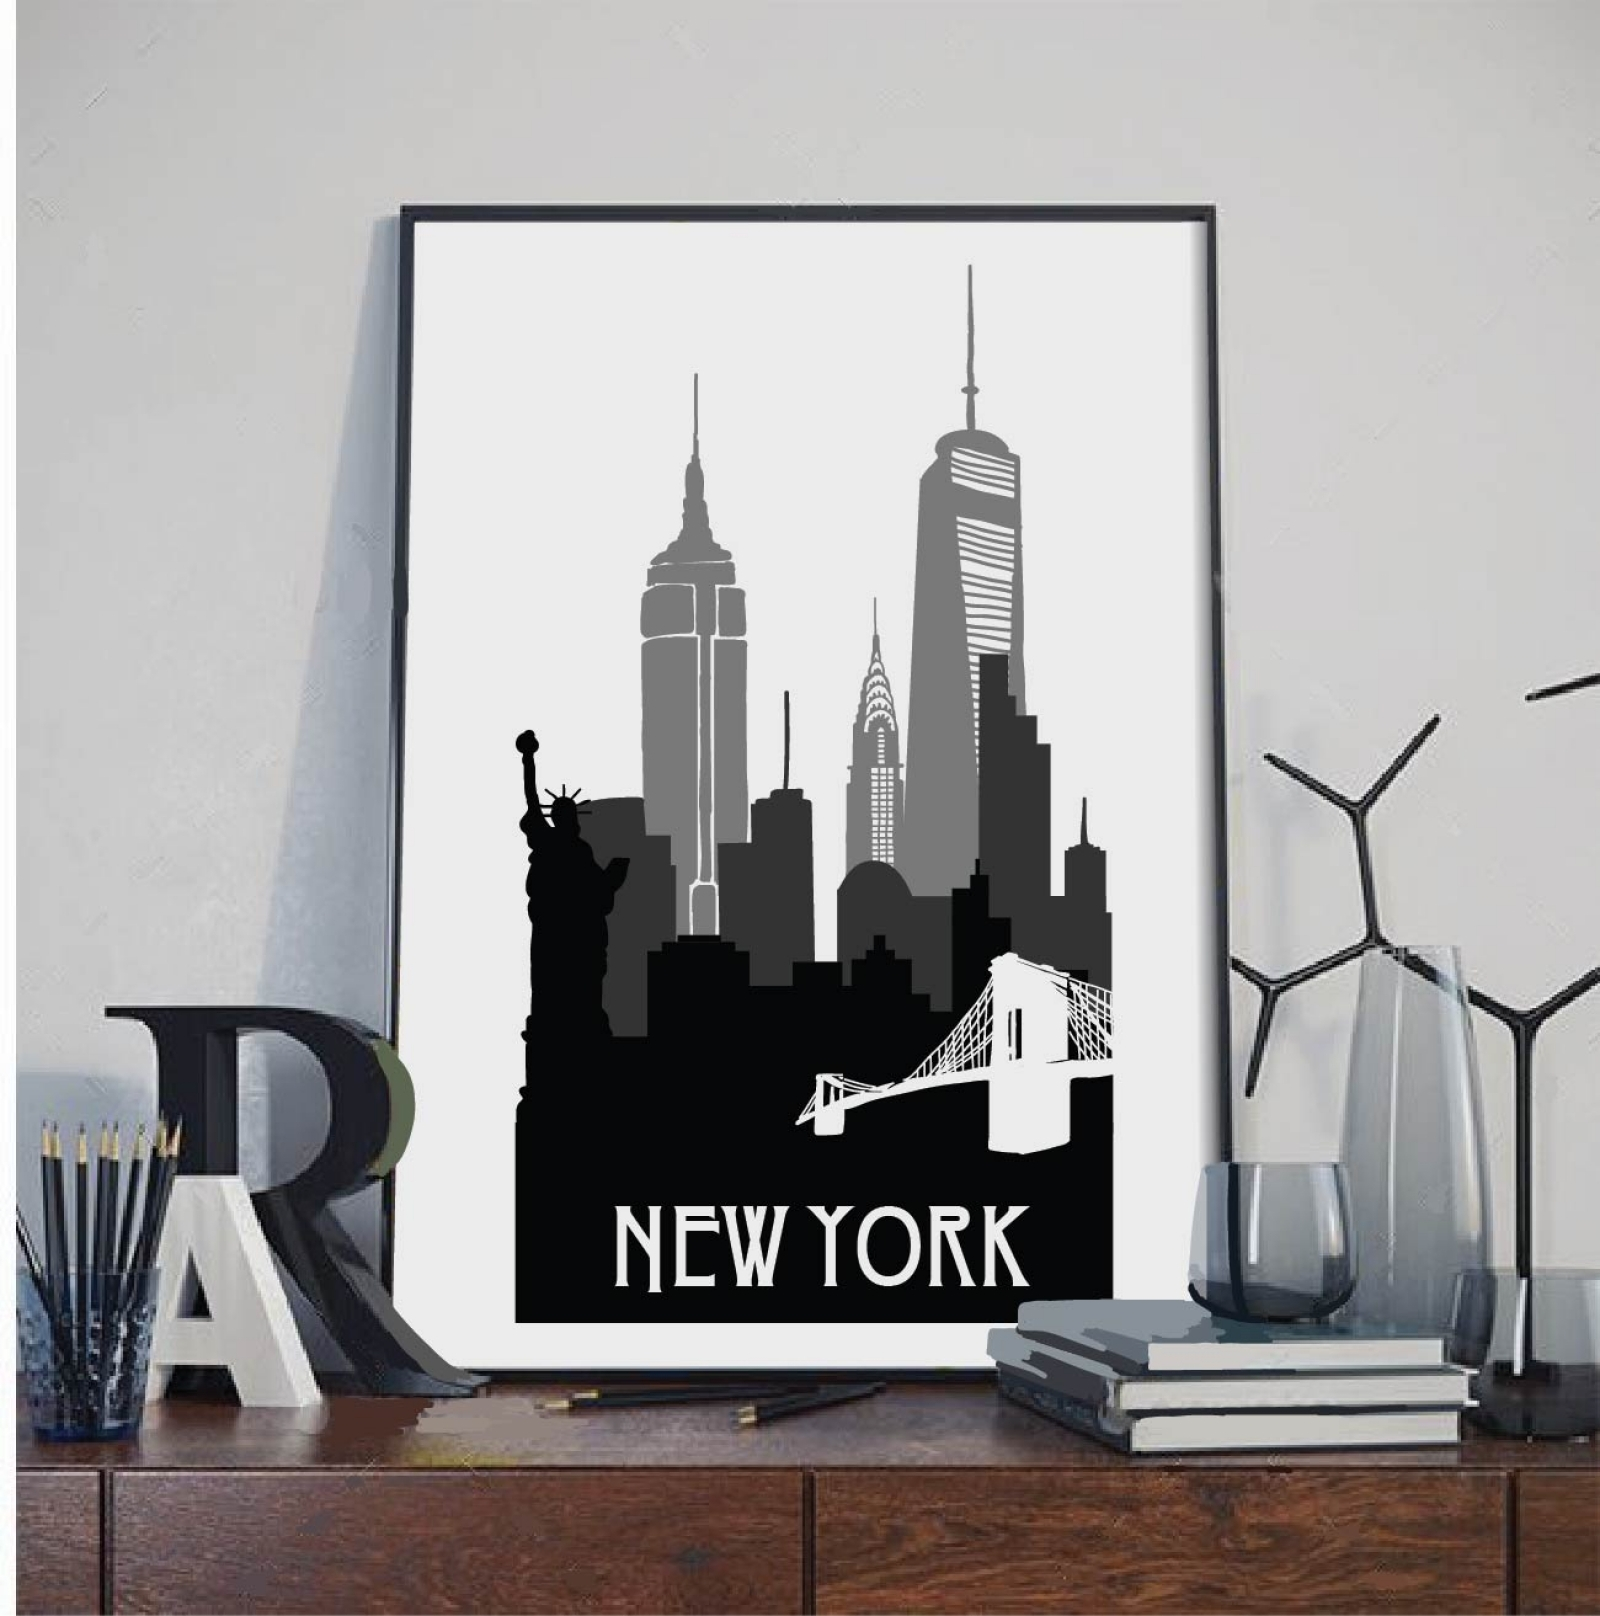 New York Print, New York Silhouette Print, Wall Art,city Poster Pertaining To Most Popular New York Wall Art (View 13 of 20)